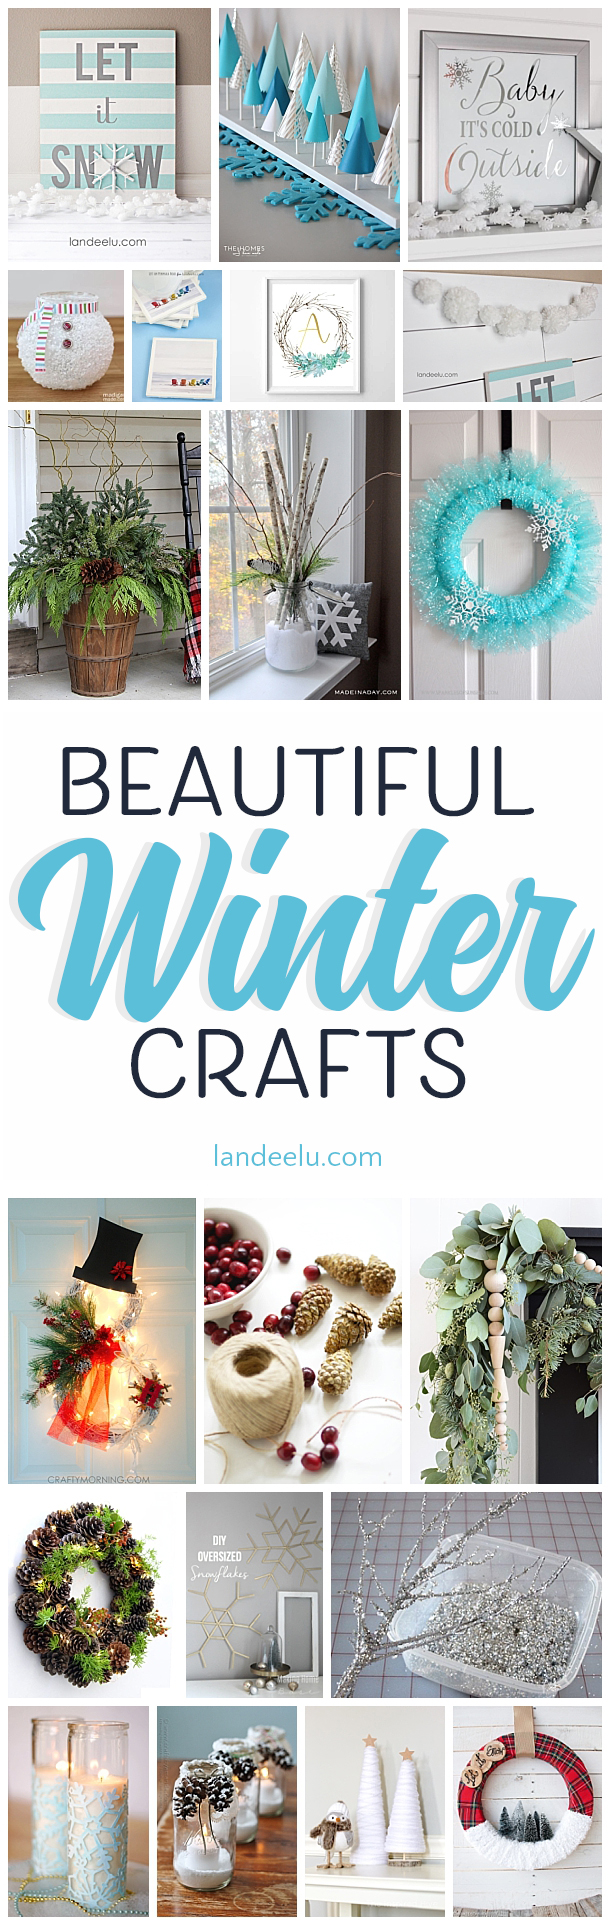 I love these winter crafts... such pretty wintery colors and ideas!